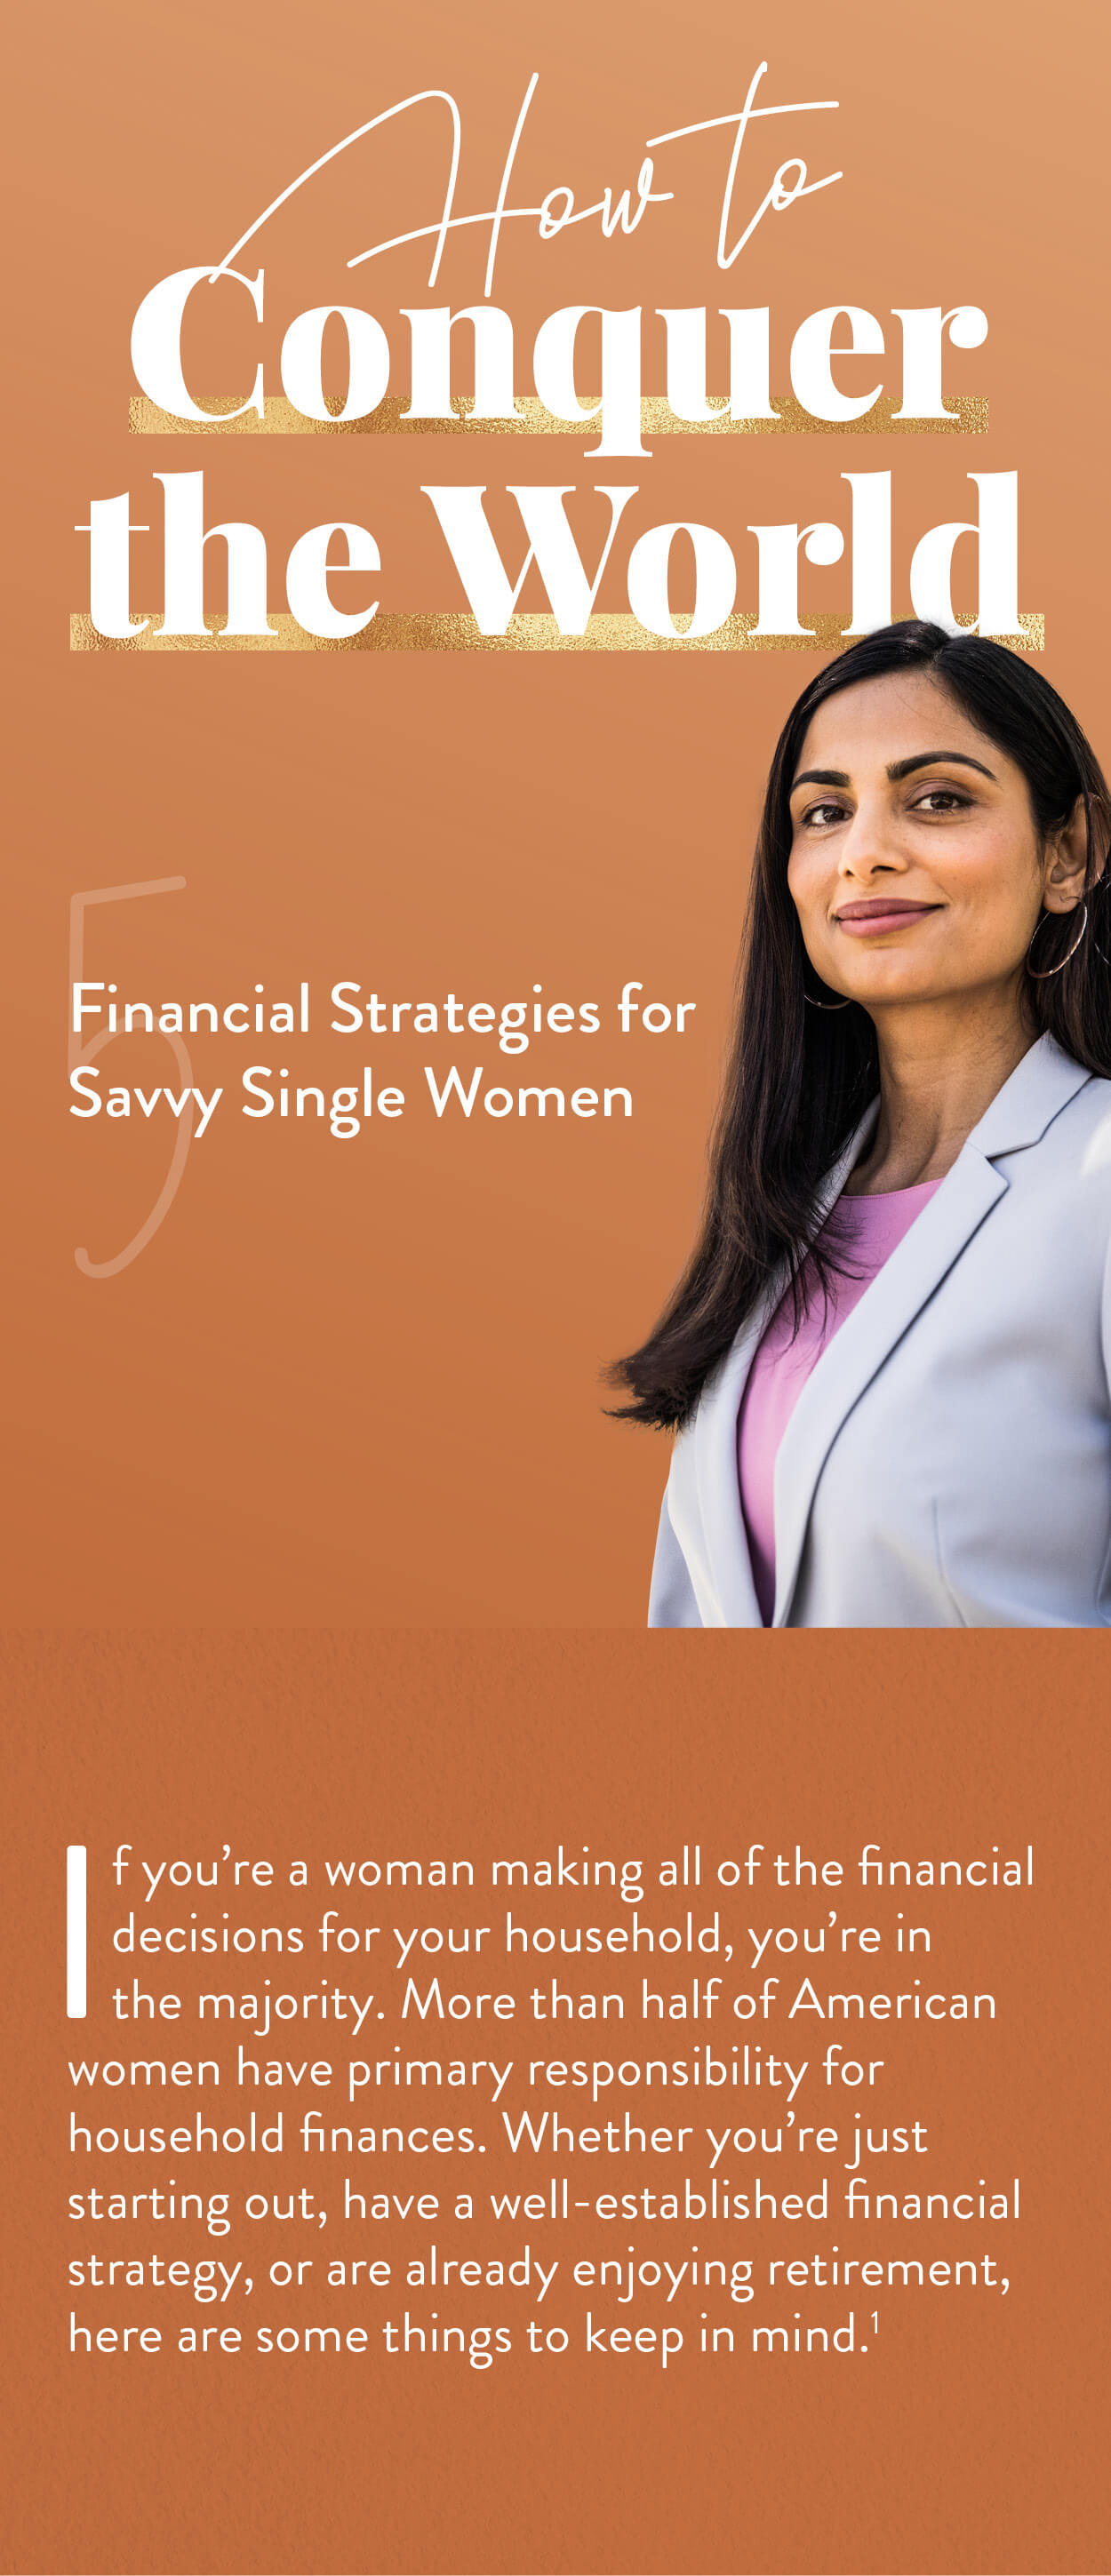 How to Conquer the World: 5 Financial Strategies for Savvy Single Women. If you're a woman making all of the financial decisions for your household, you're in the majority. Sixty-nine percent of American women are living without a spouse or partner. Whether you're just starting out, or have a well-established financial strategy, or are already enjoying retirement, here are some things to keep in mind.(1)